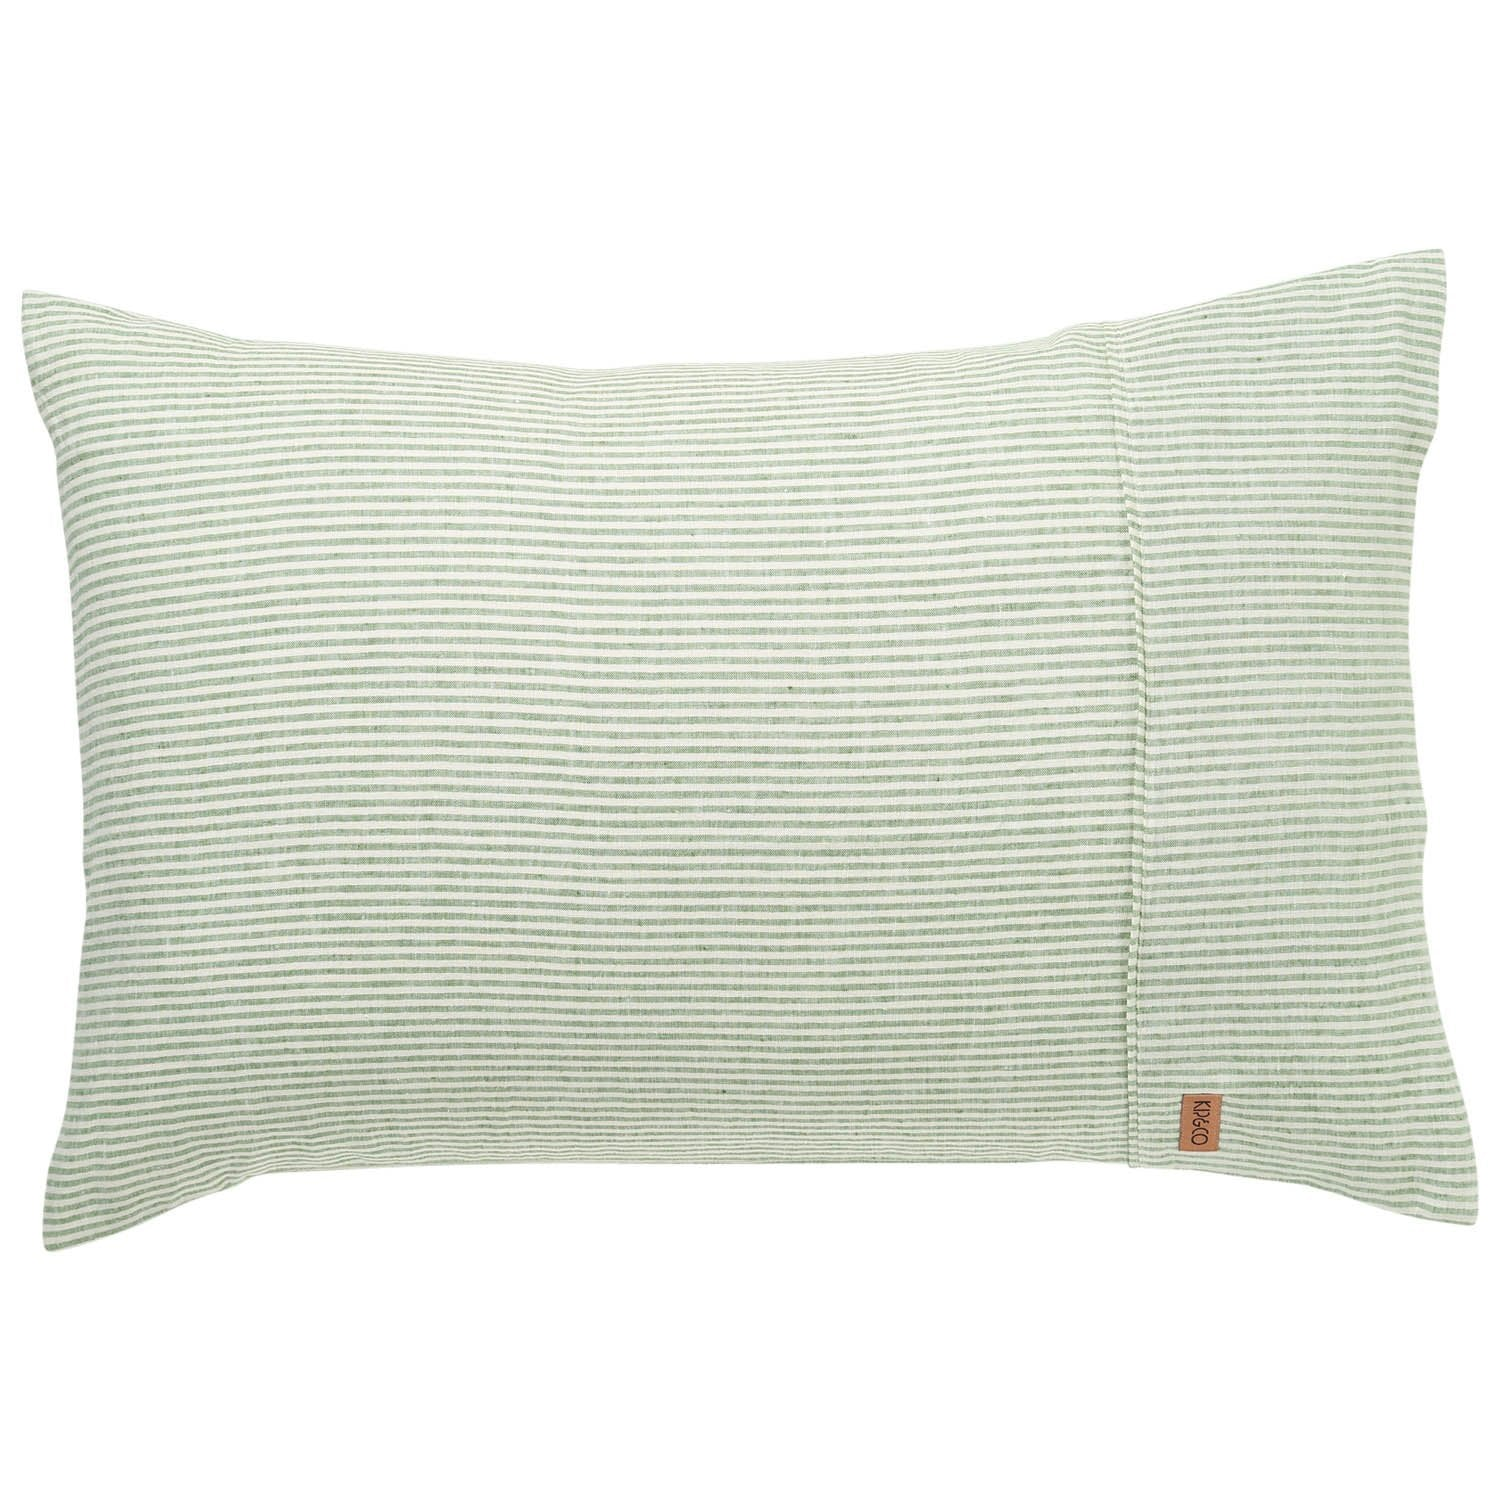 St Barts Stripe Linen Pillowcase 2P Set - The Artisan Storeroom